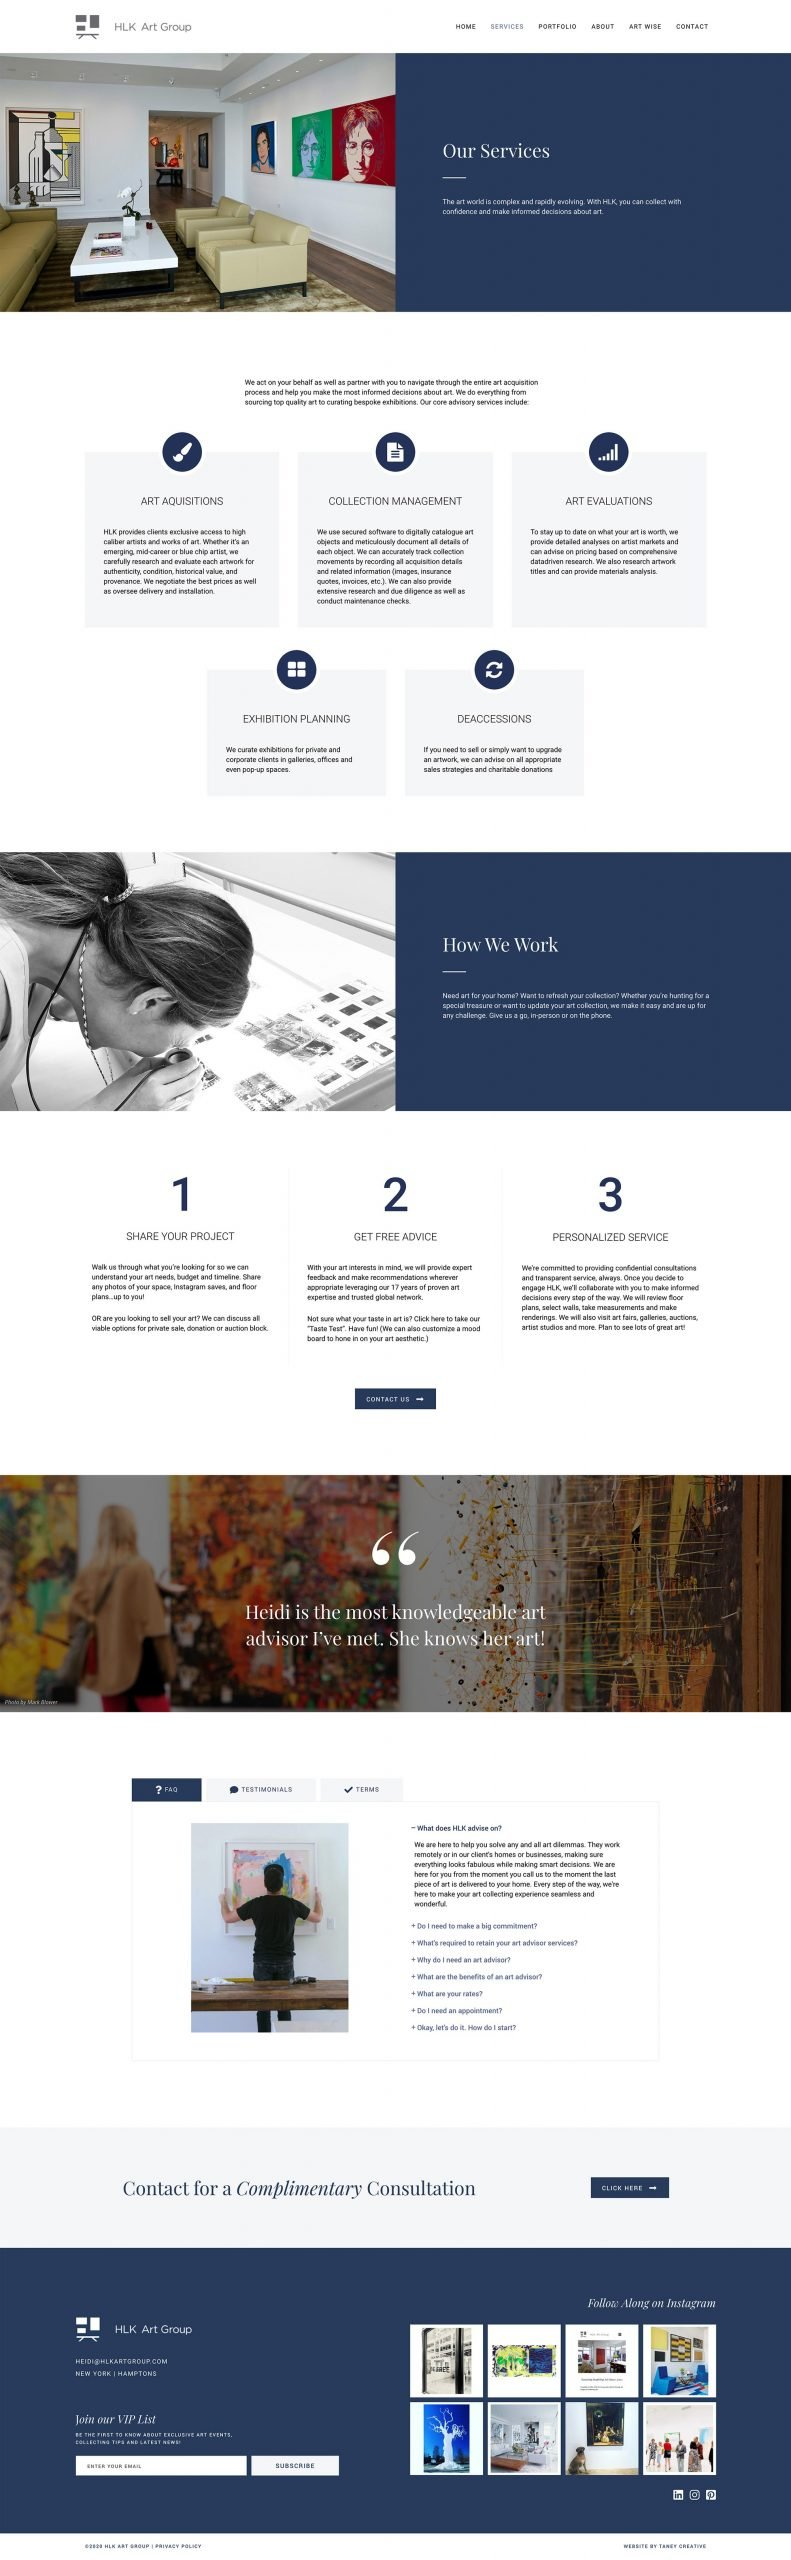 services web design hlk art group